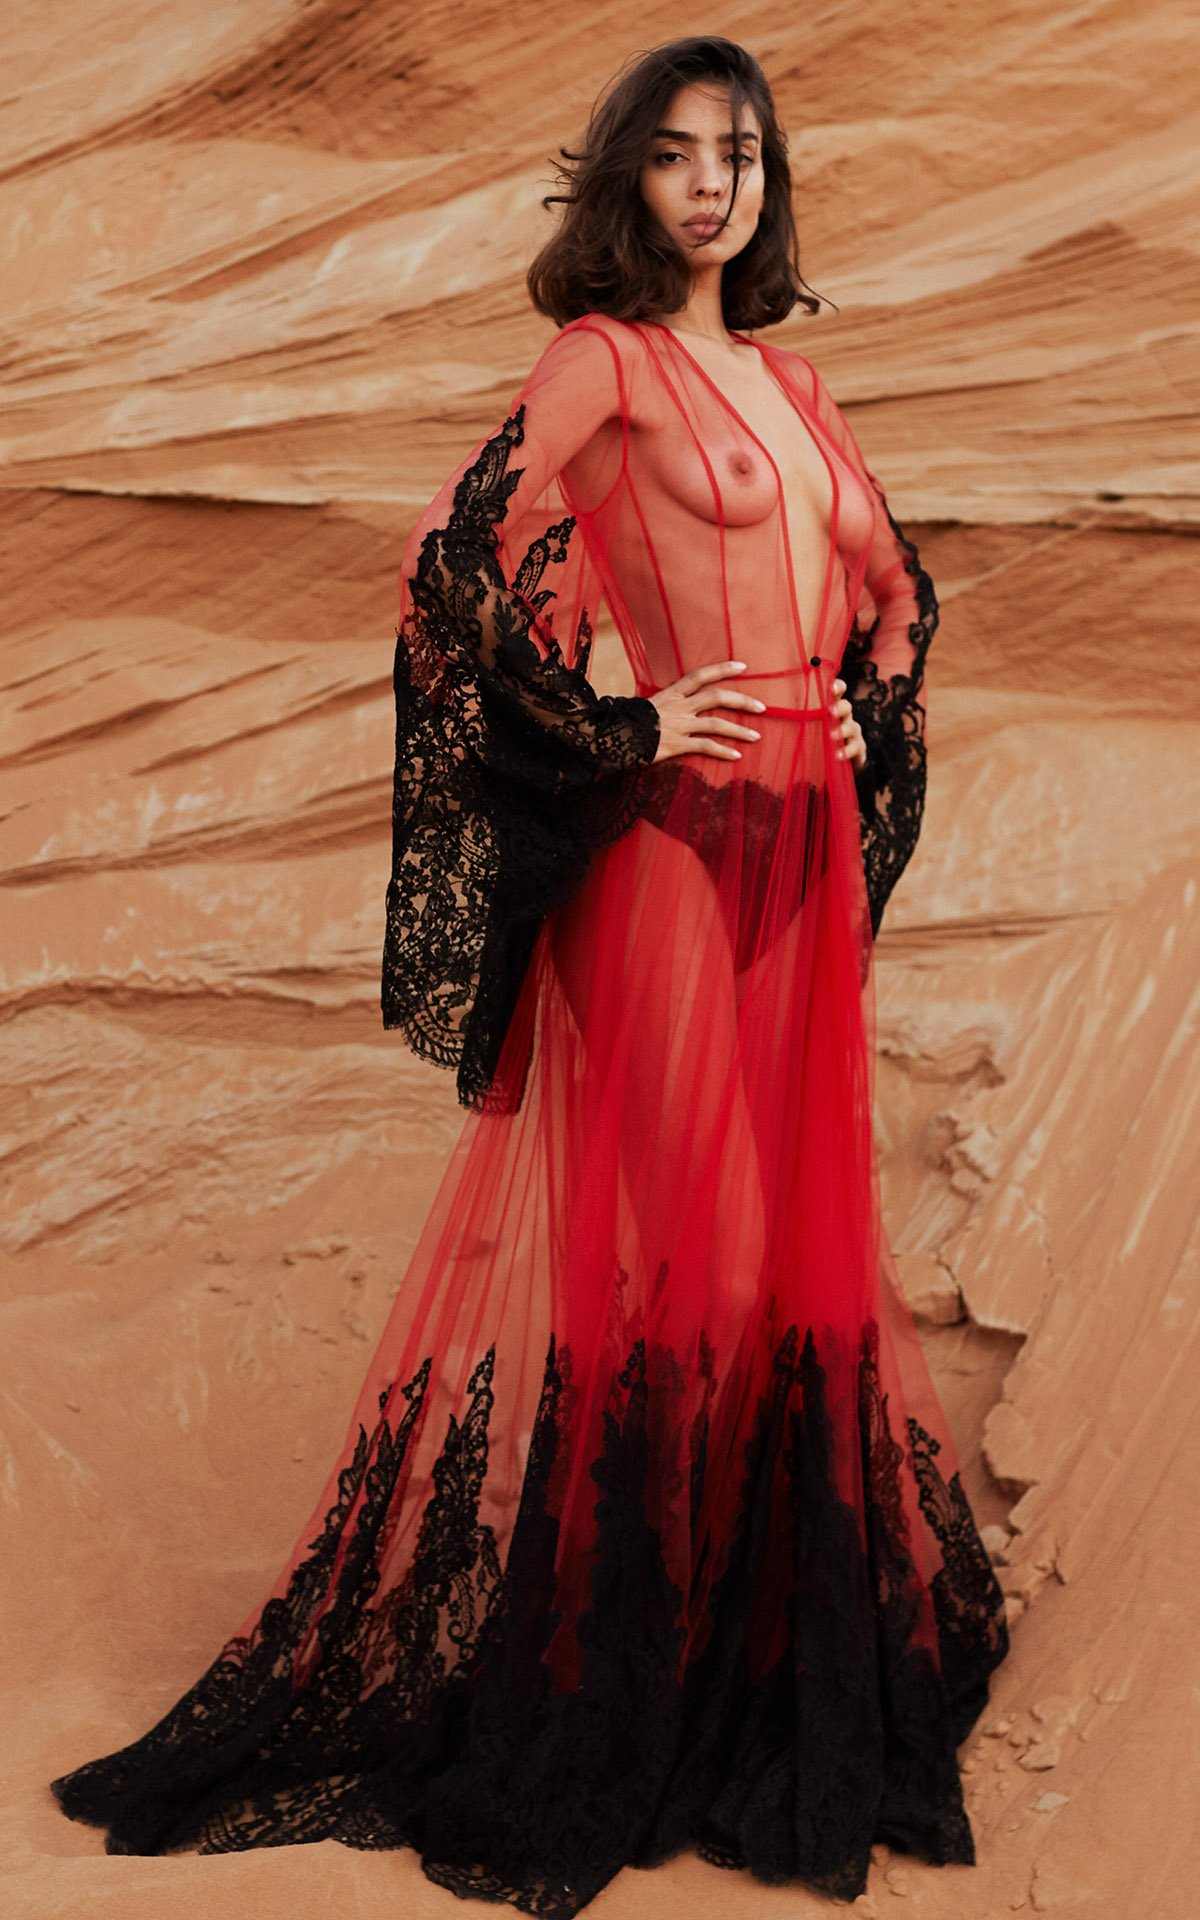 ROSAMOSARIO_A-princess-called-Meera_Aroob-loving-for-my-husband_Tulle-and-lace-dress_Red_black_1